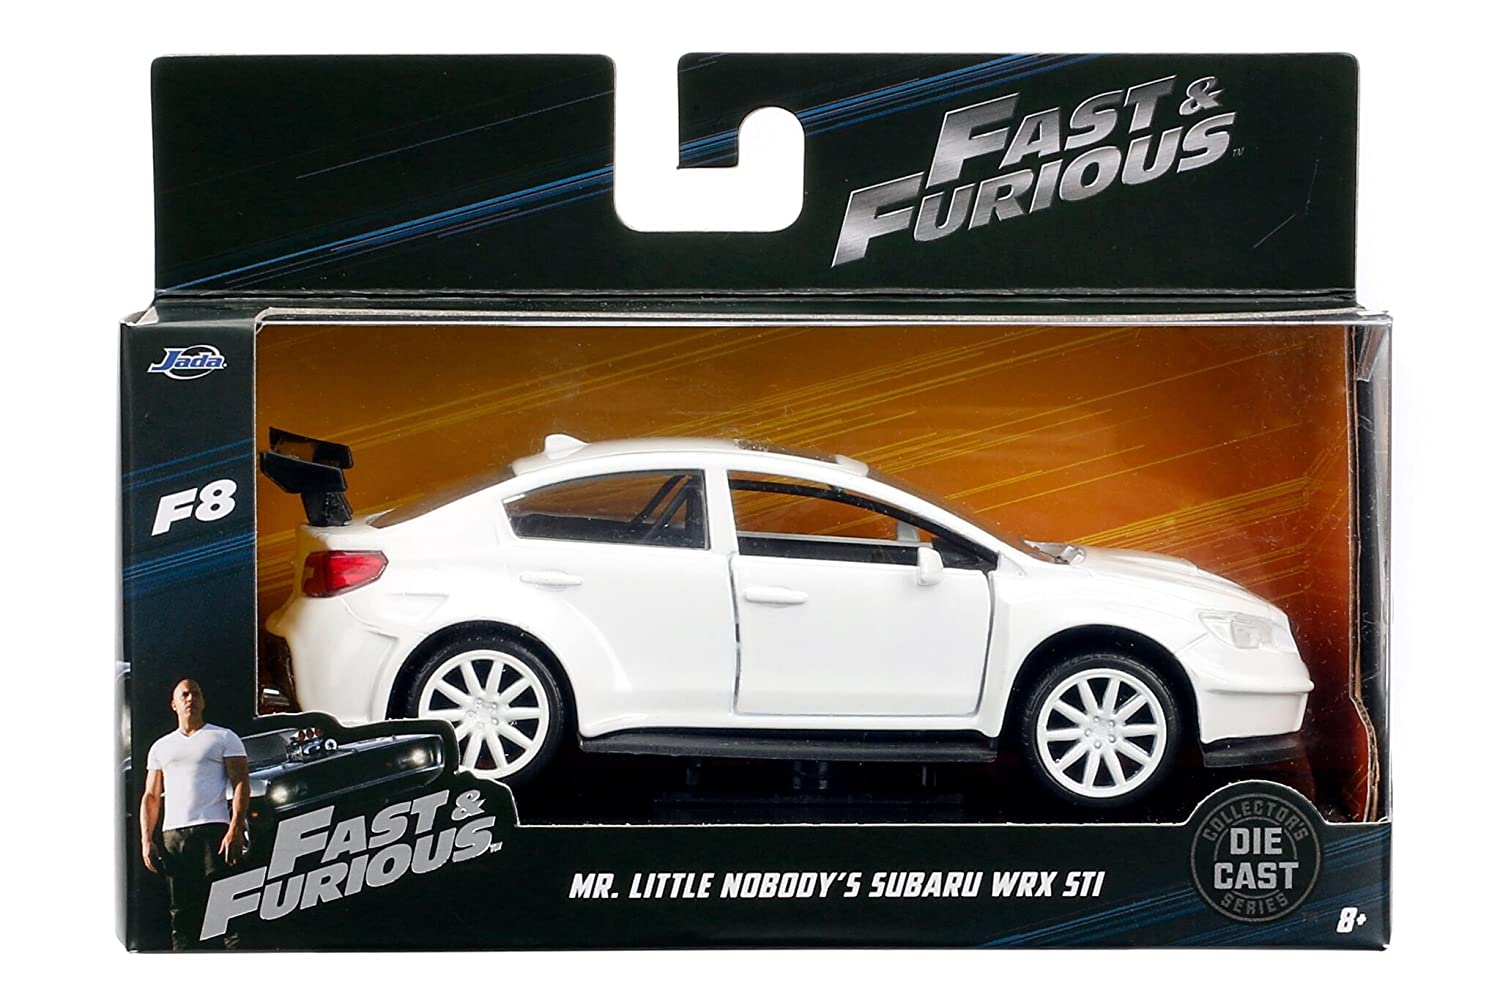 Jada 1 32 Fast Furious 8 Mr. Little Nobody's Subaru WRX STI Diecast Model Car